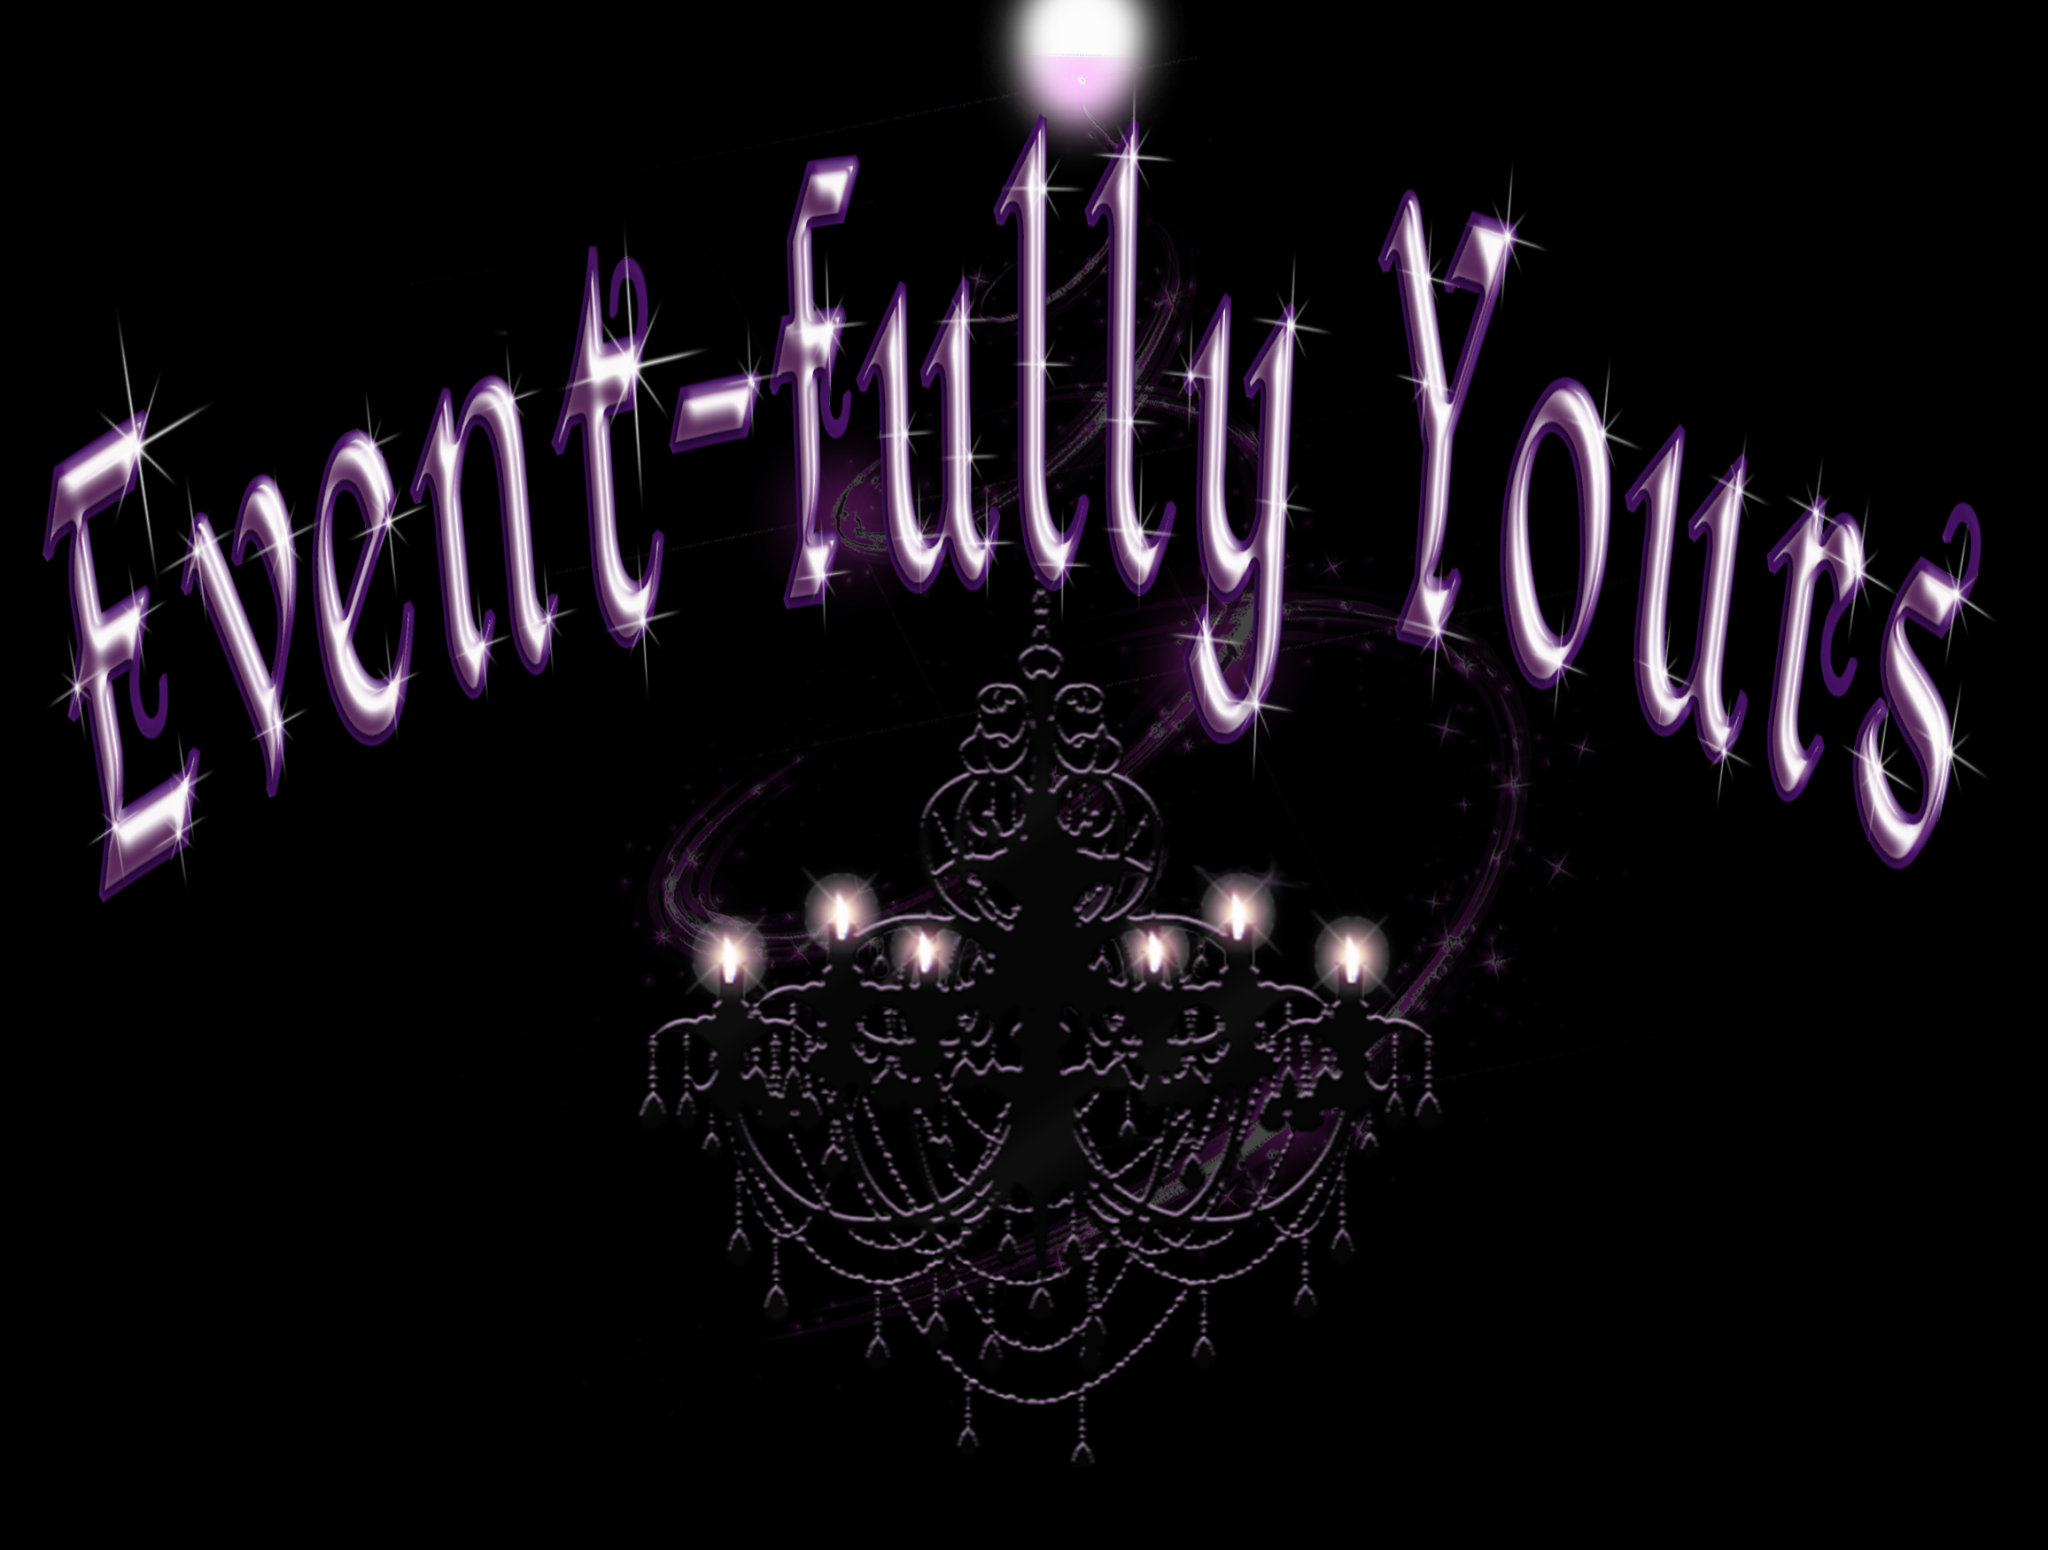 Event-Fully Yours